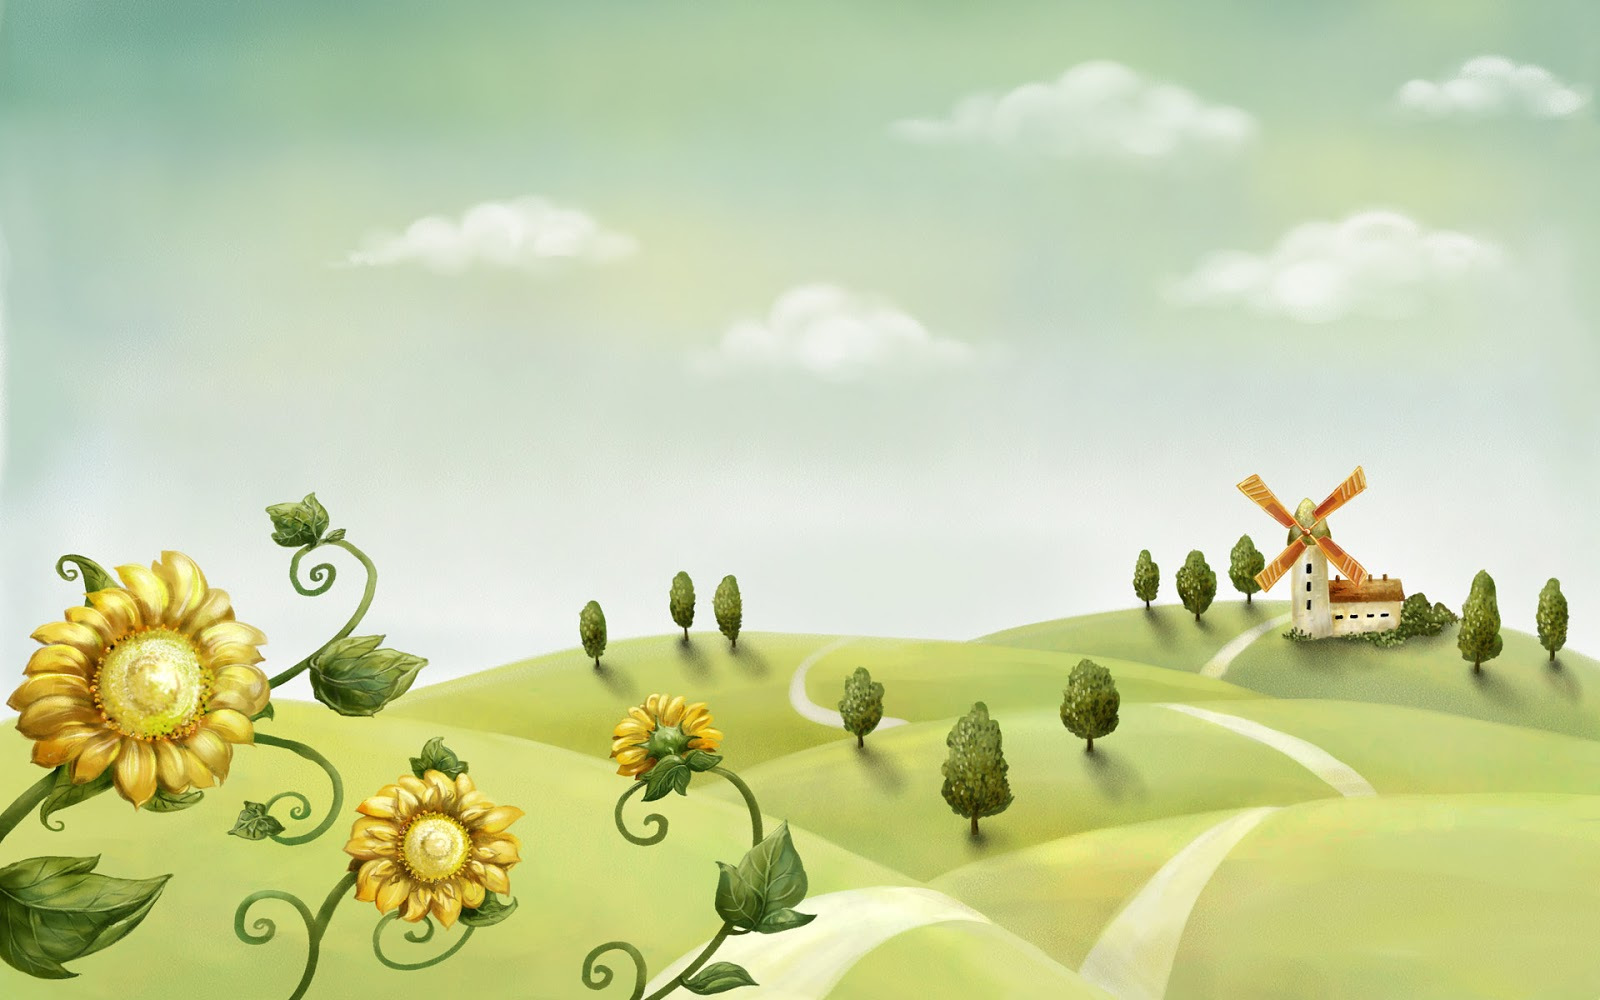 http://1.bp.blogspot.com/-K3aBqLh5oZc/UPJdKZRskZI/AAAAAAAAANM/9aQFQeZDI_8/s1600/sunflower-in-green-garden-with-lighthouse-background-cartoon-hd-wallpapers-1920-x-1200.jpg